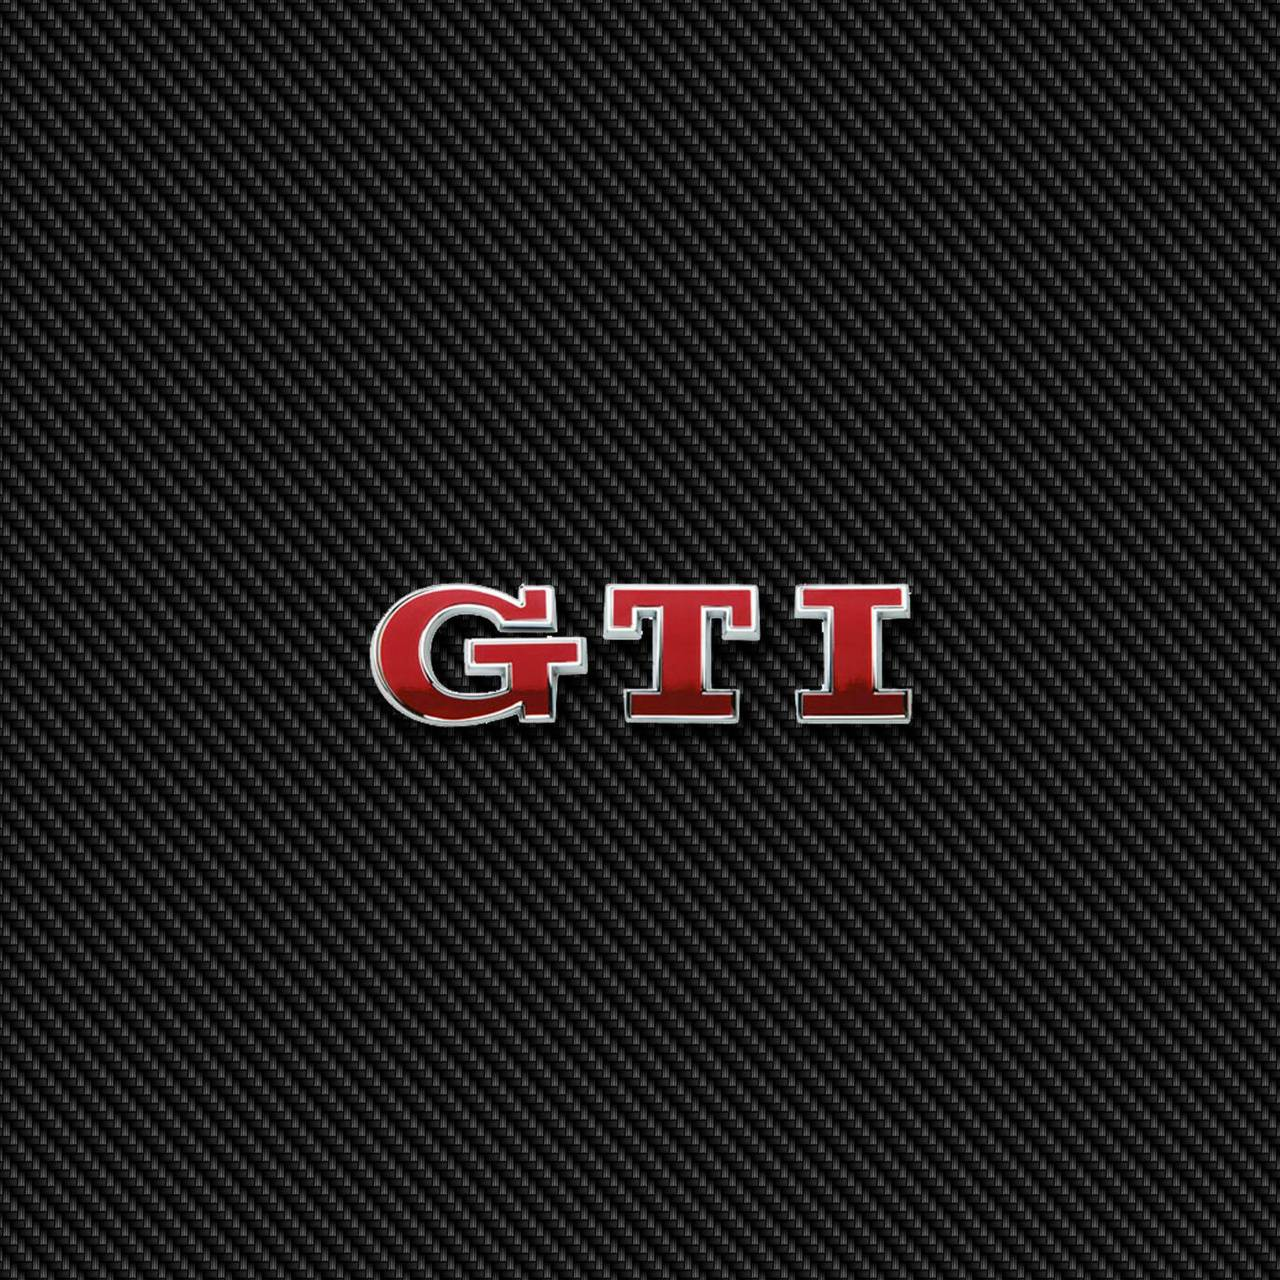 Gti Carbon Wallpaper By Bruceiras 09 Free On Zedge